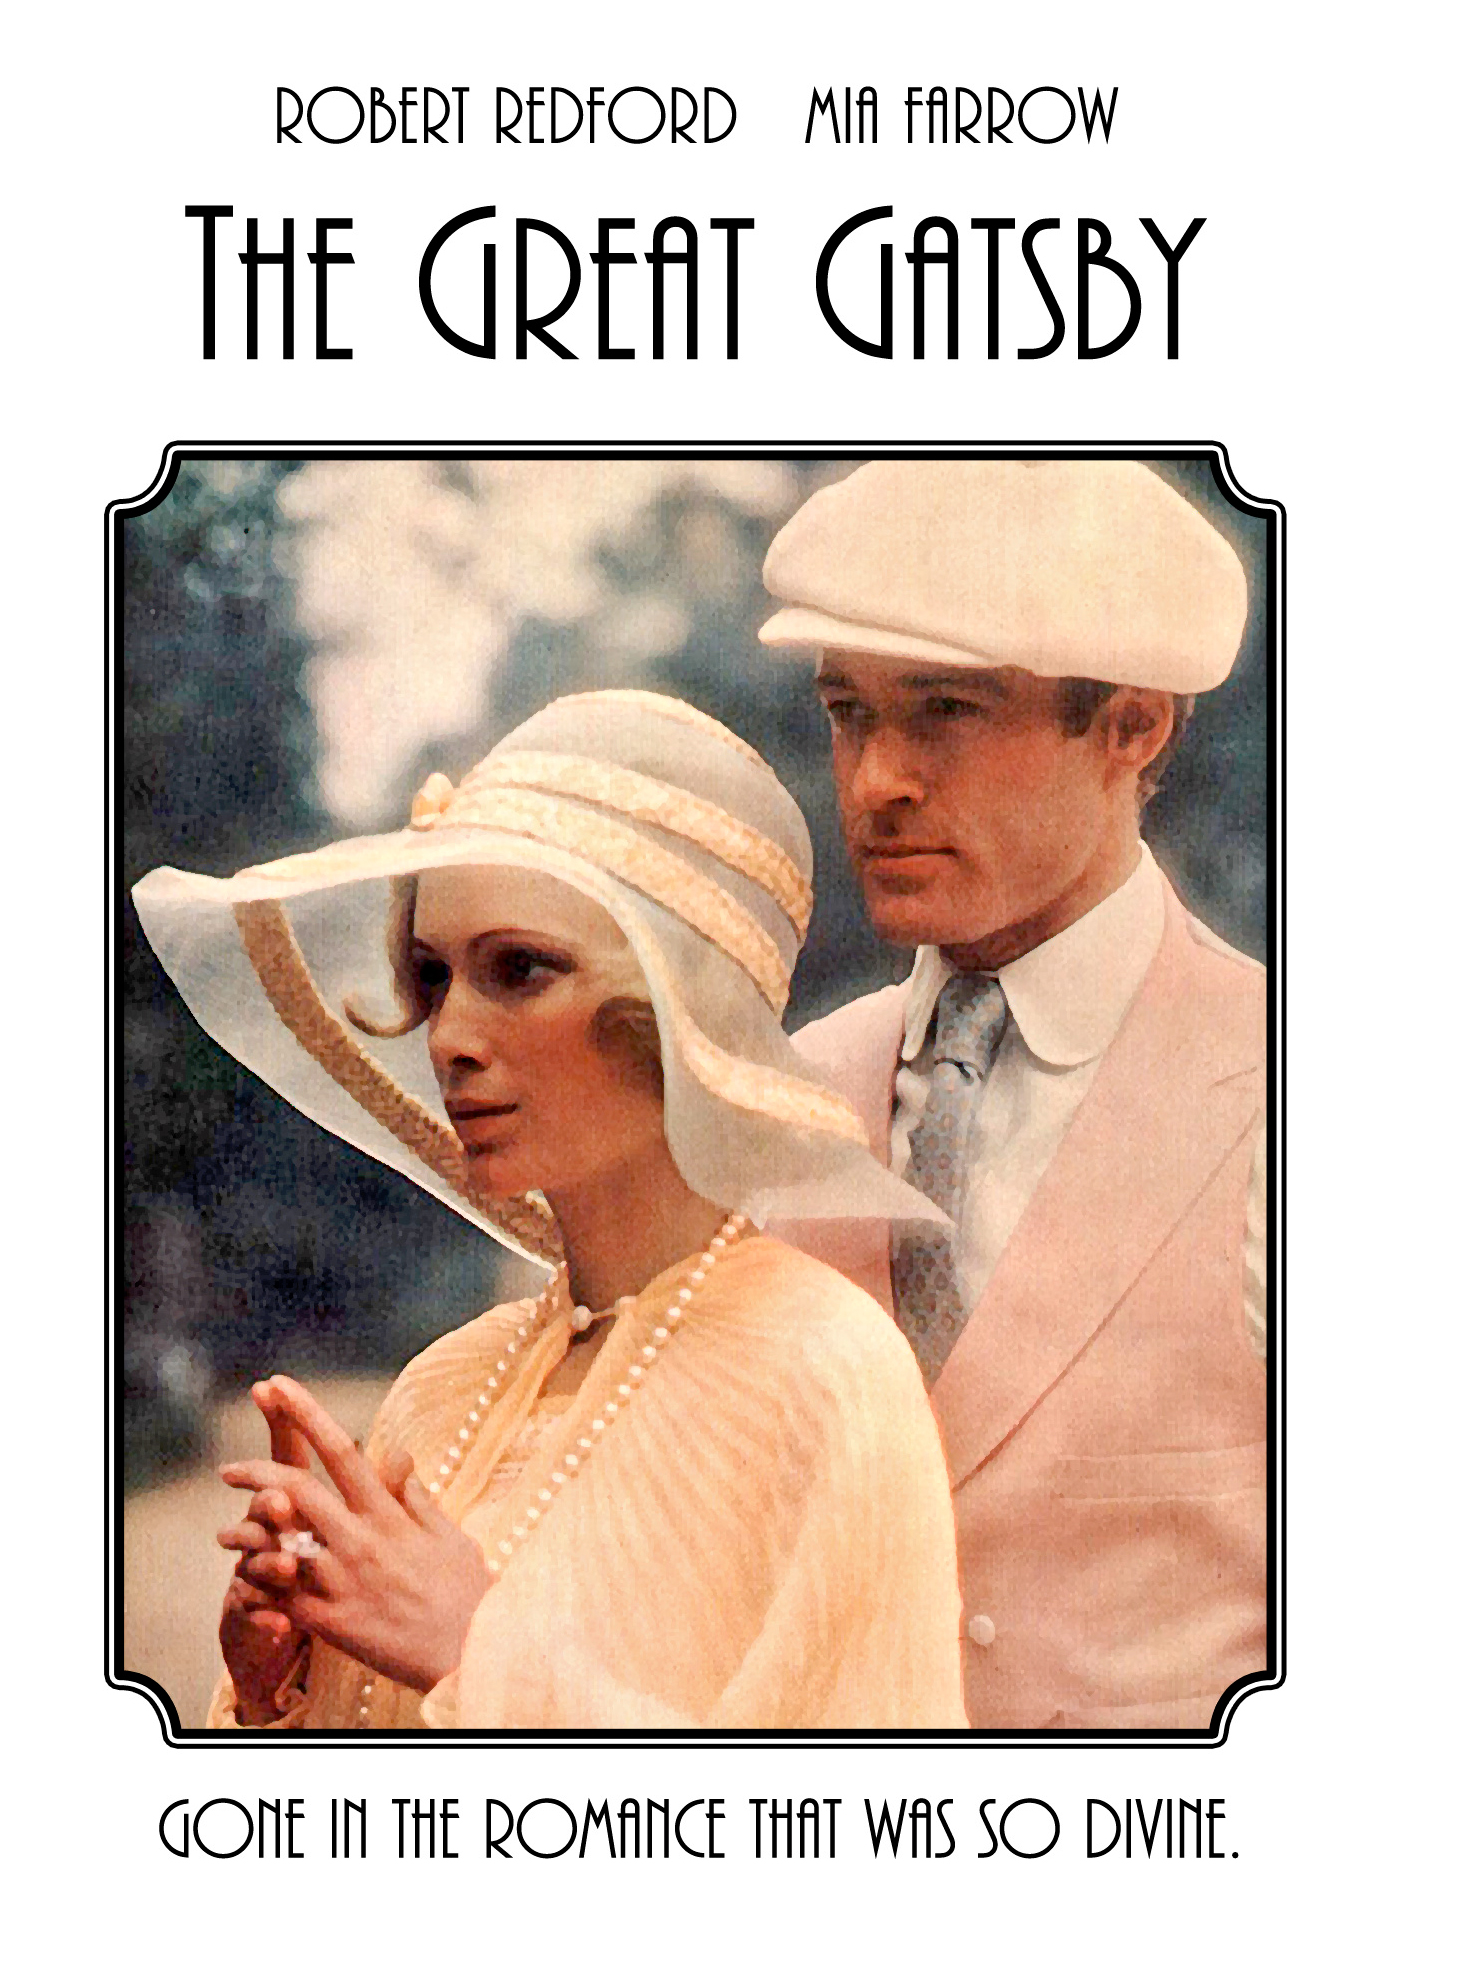 the great gatsby films then and now rh buzzfeed com The Great Gatsby Movie 1974 The Great Gatsby Movie 1974